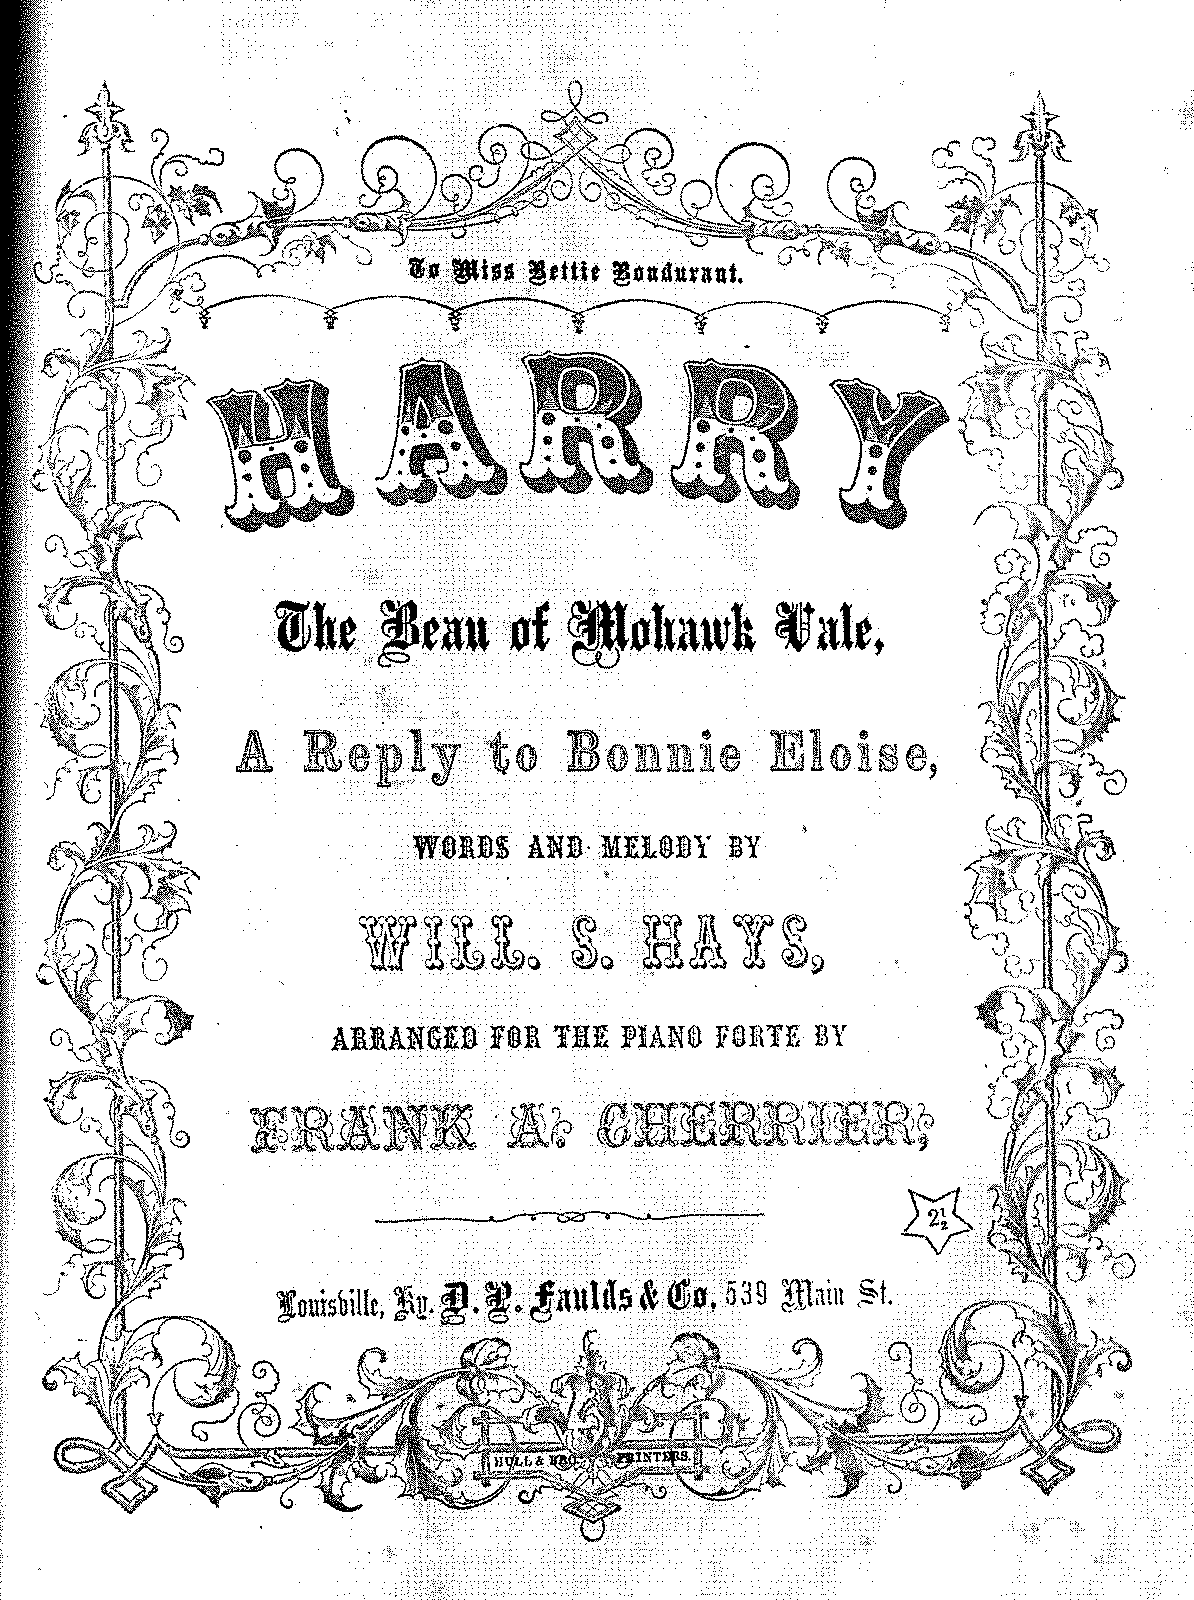 PMLP527409-V.057 P.195 - Harry the Beau of Mohawk Vale - Will S. Hayes.pdf